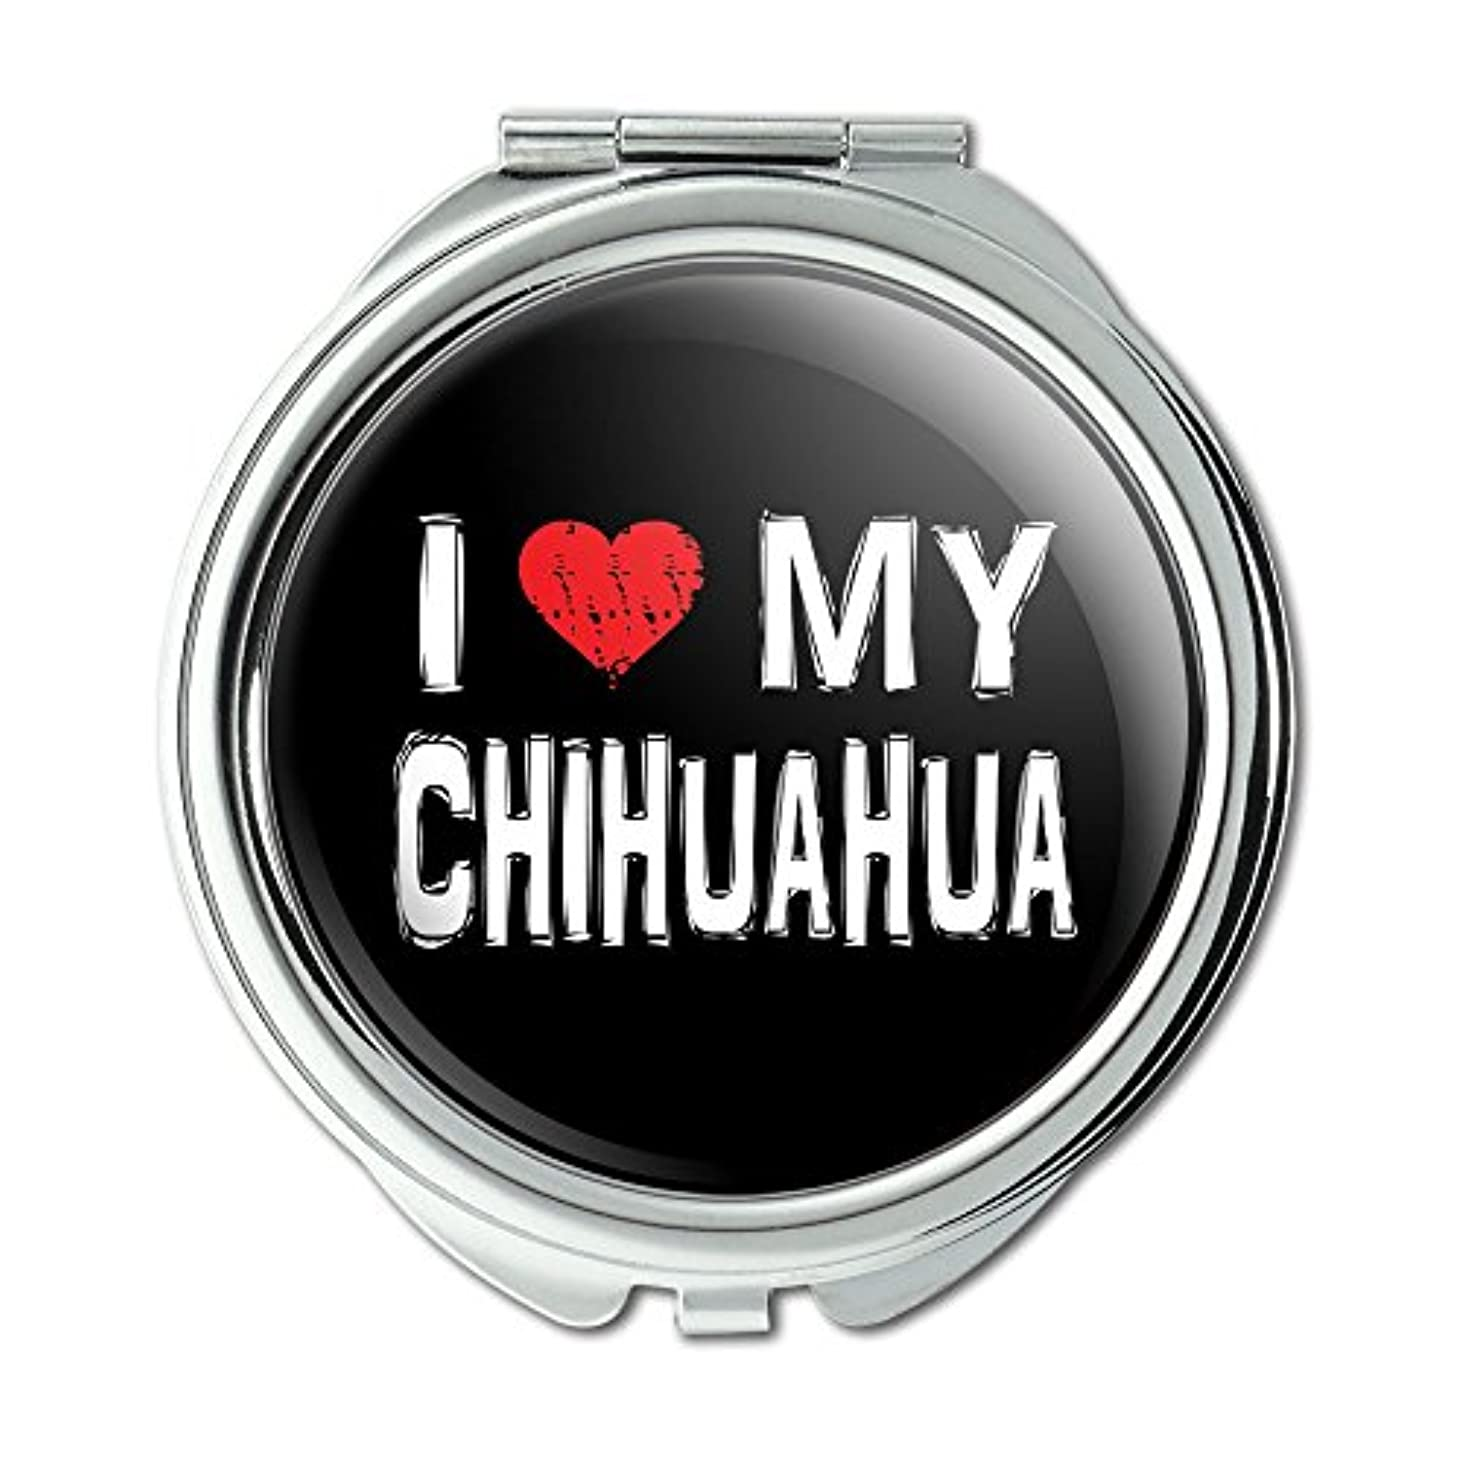 差別大事にする航海I Love My Chihuahua Stylish Compact Purse Mirror